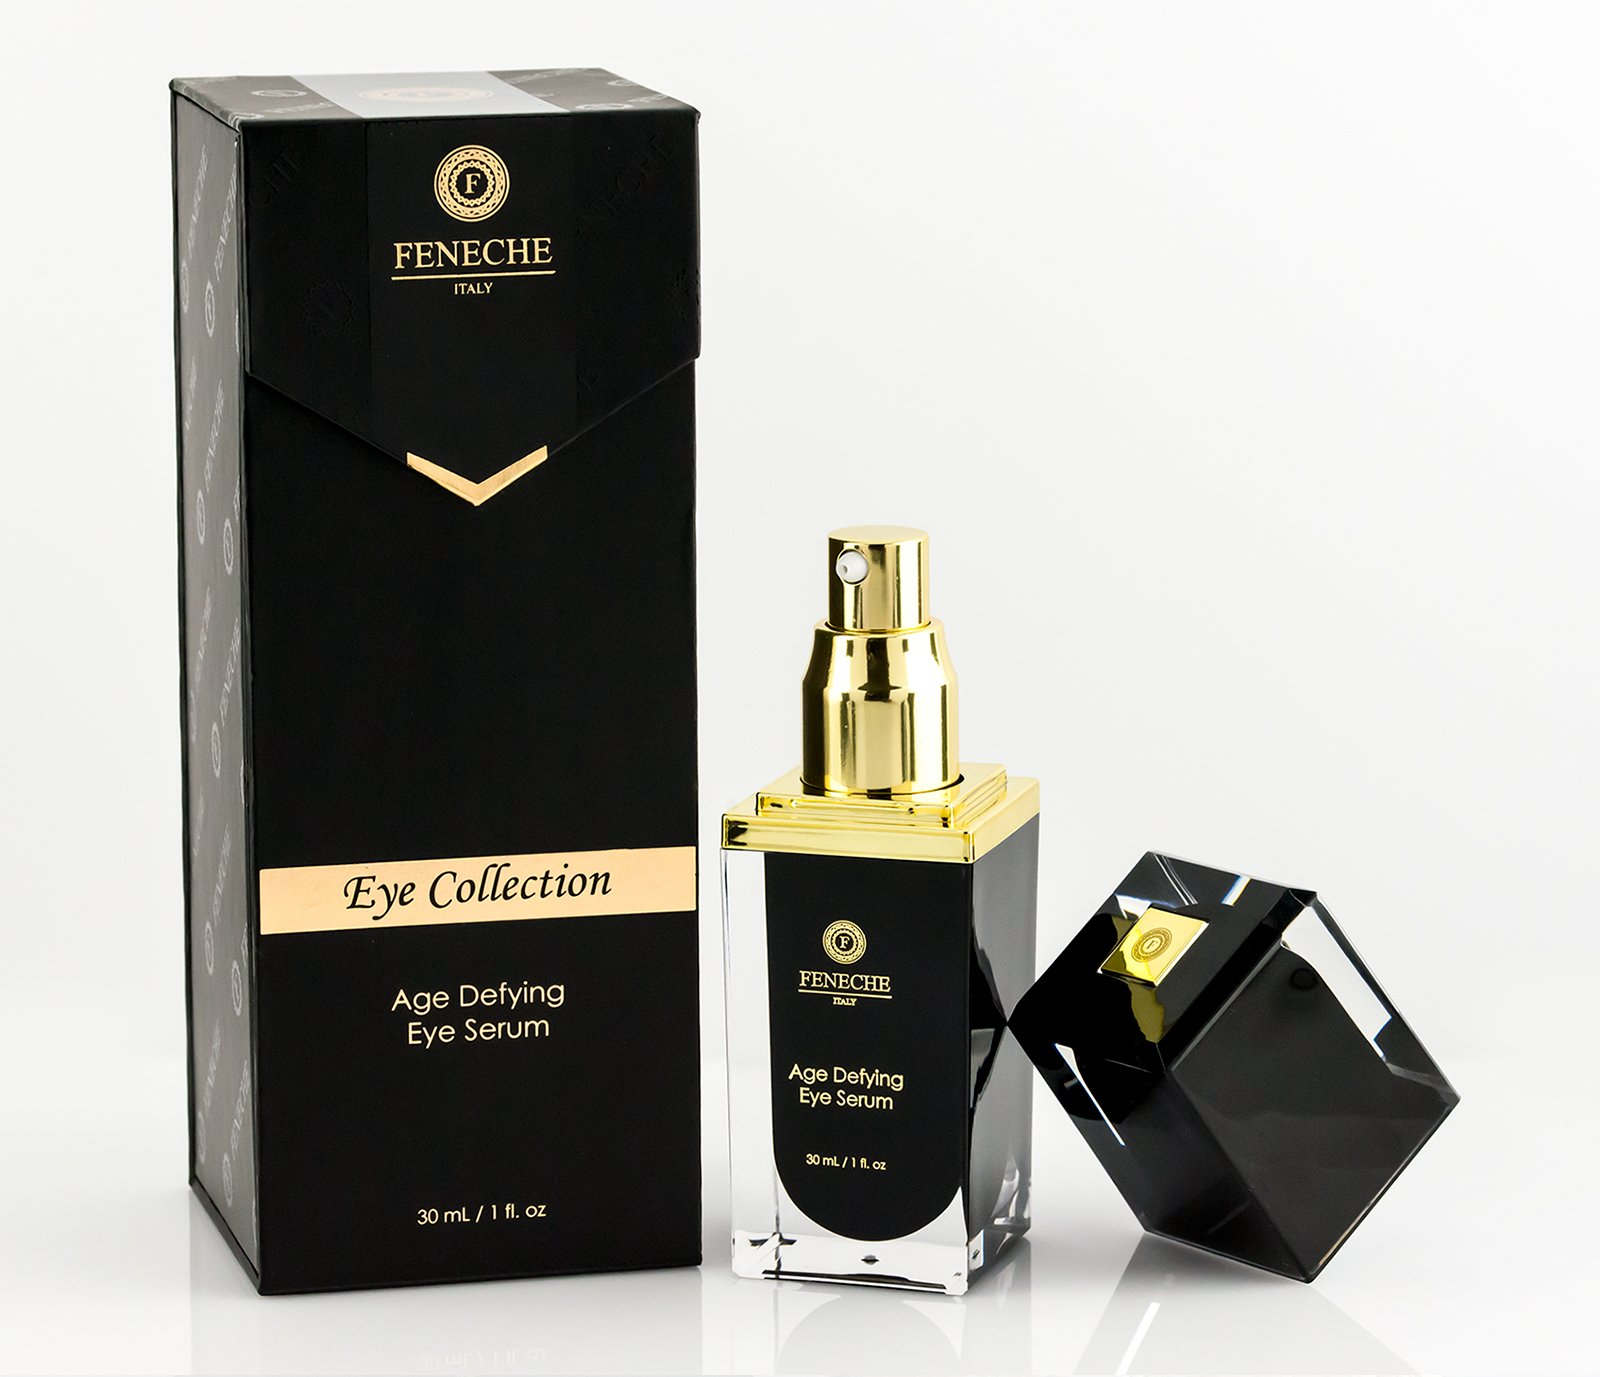 Feneche Age Defying Eye Serum